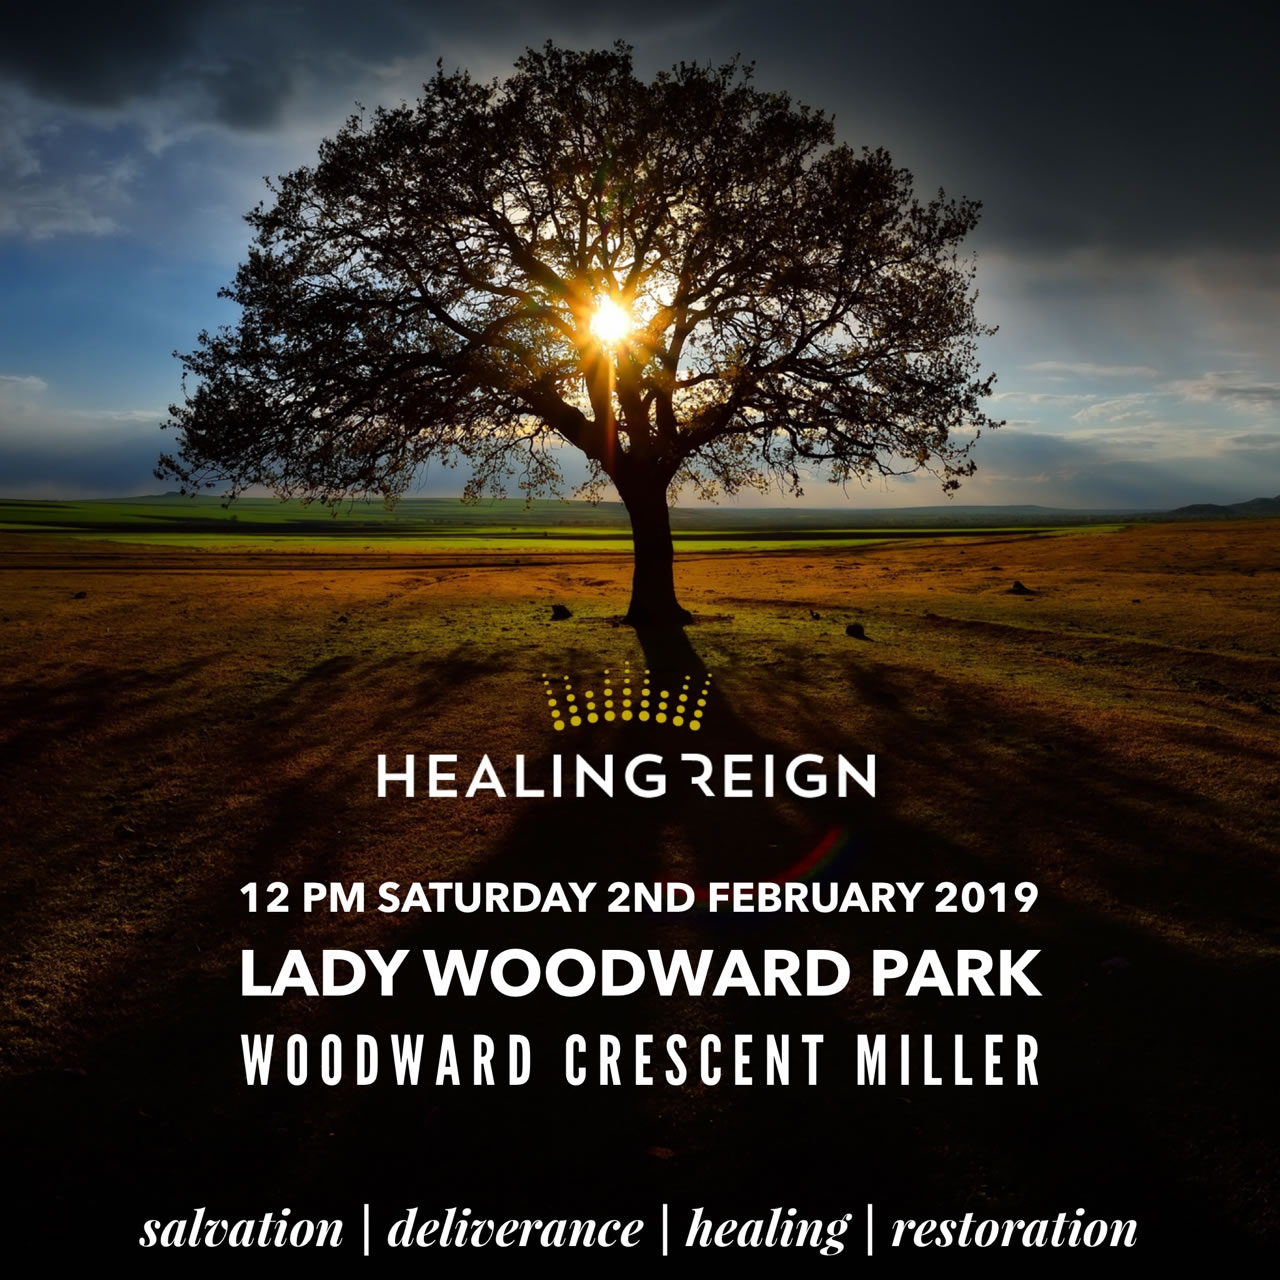 Healing Reign outreach at Lady Woodward Park Miller Saturday 2nd Feb